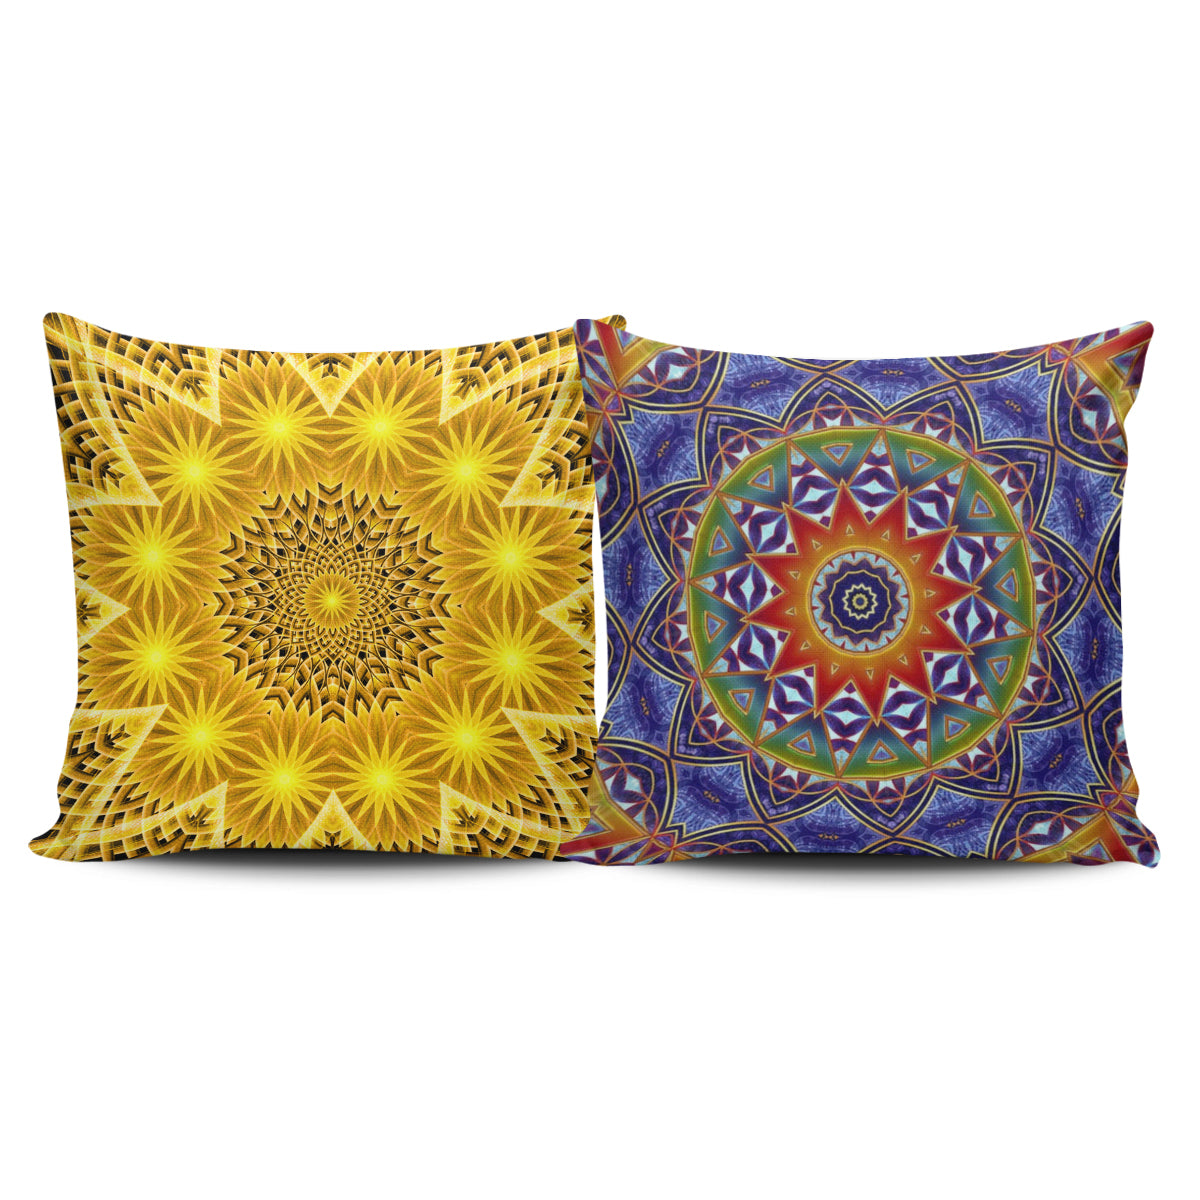 Inner Art World Colorful Pillow Covers by Visionary Artists